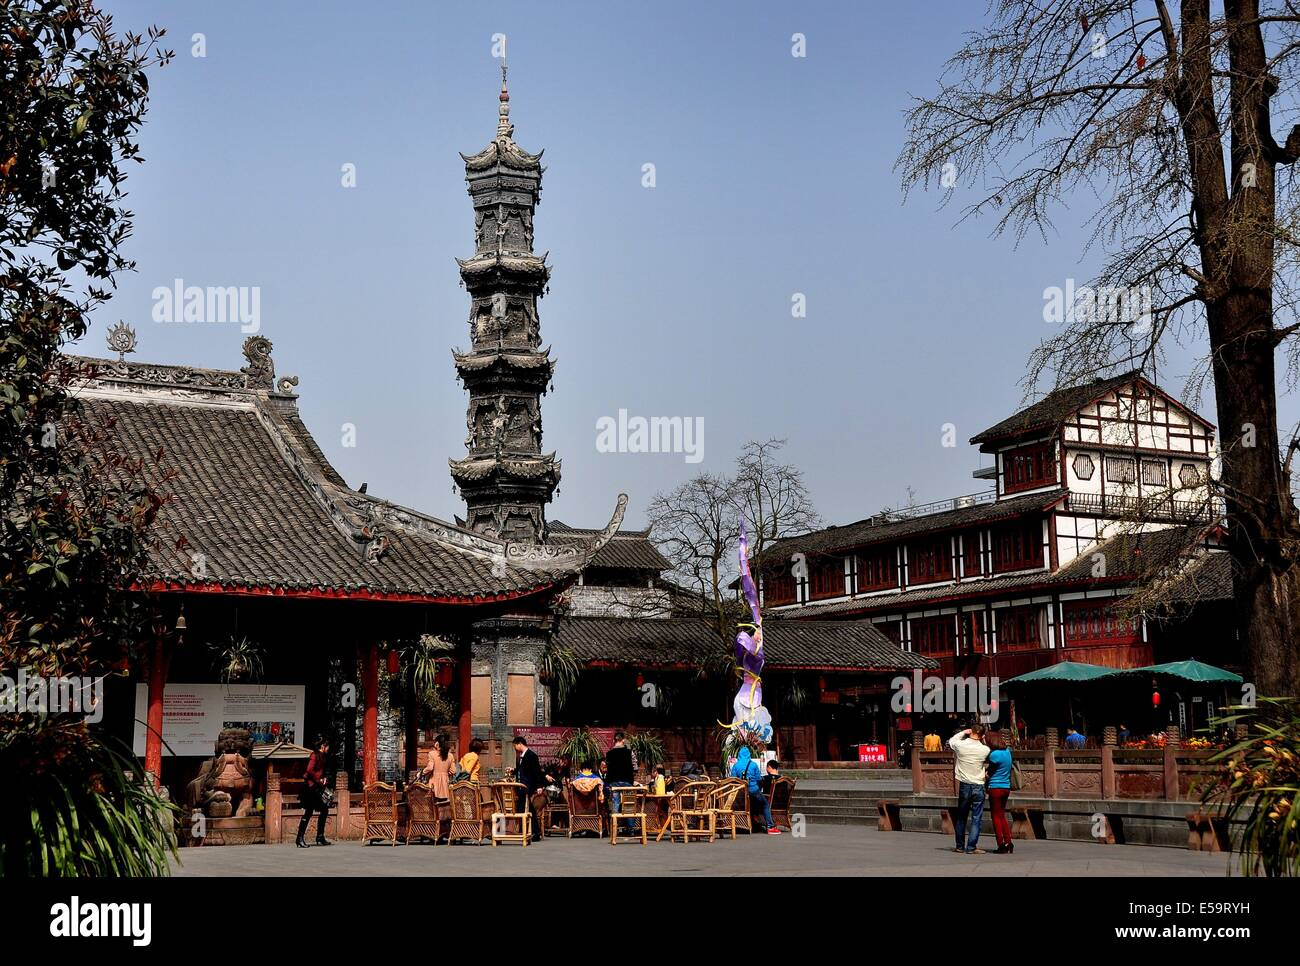 JIE ZI ANCIENT TOWN (SICHUAN), CHINA: The centuries-old five story 'Wastepaper Library' column inscribed - Stock Image